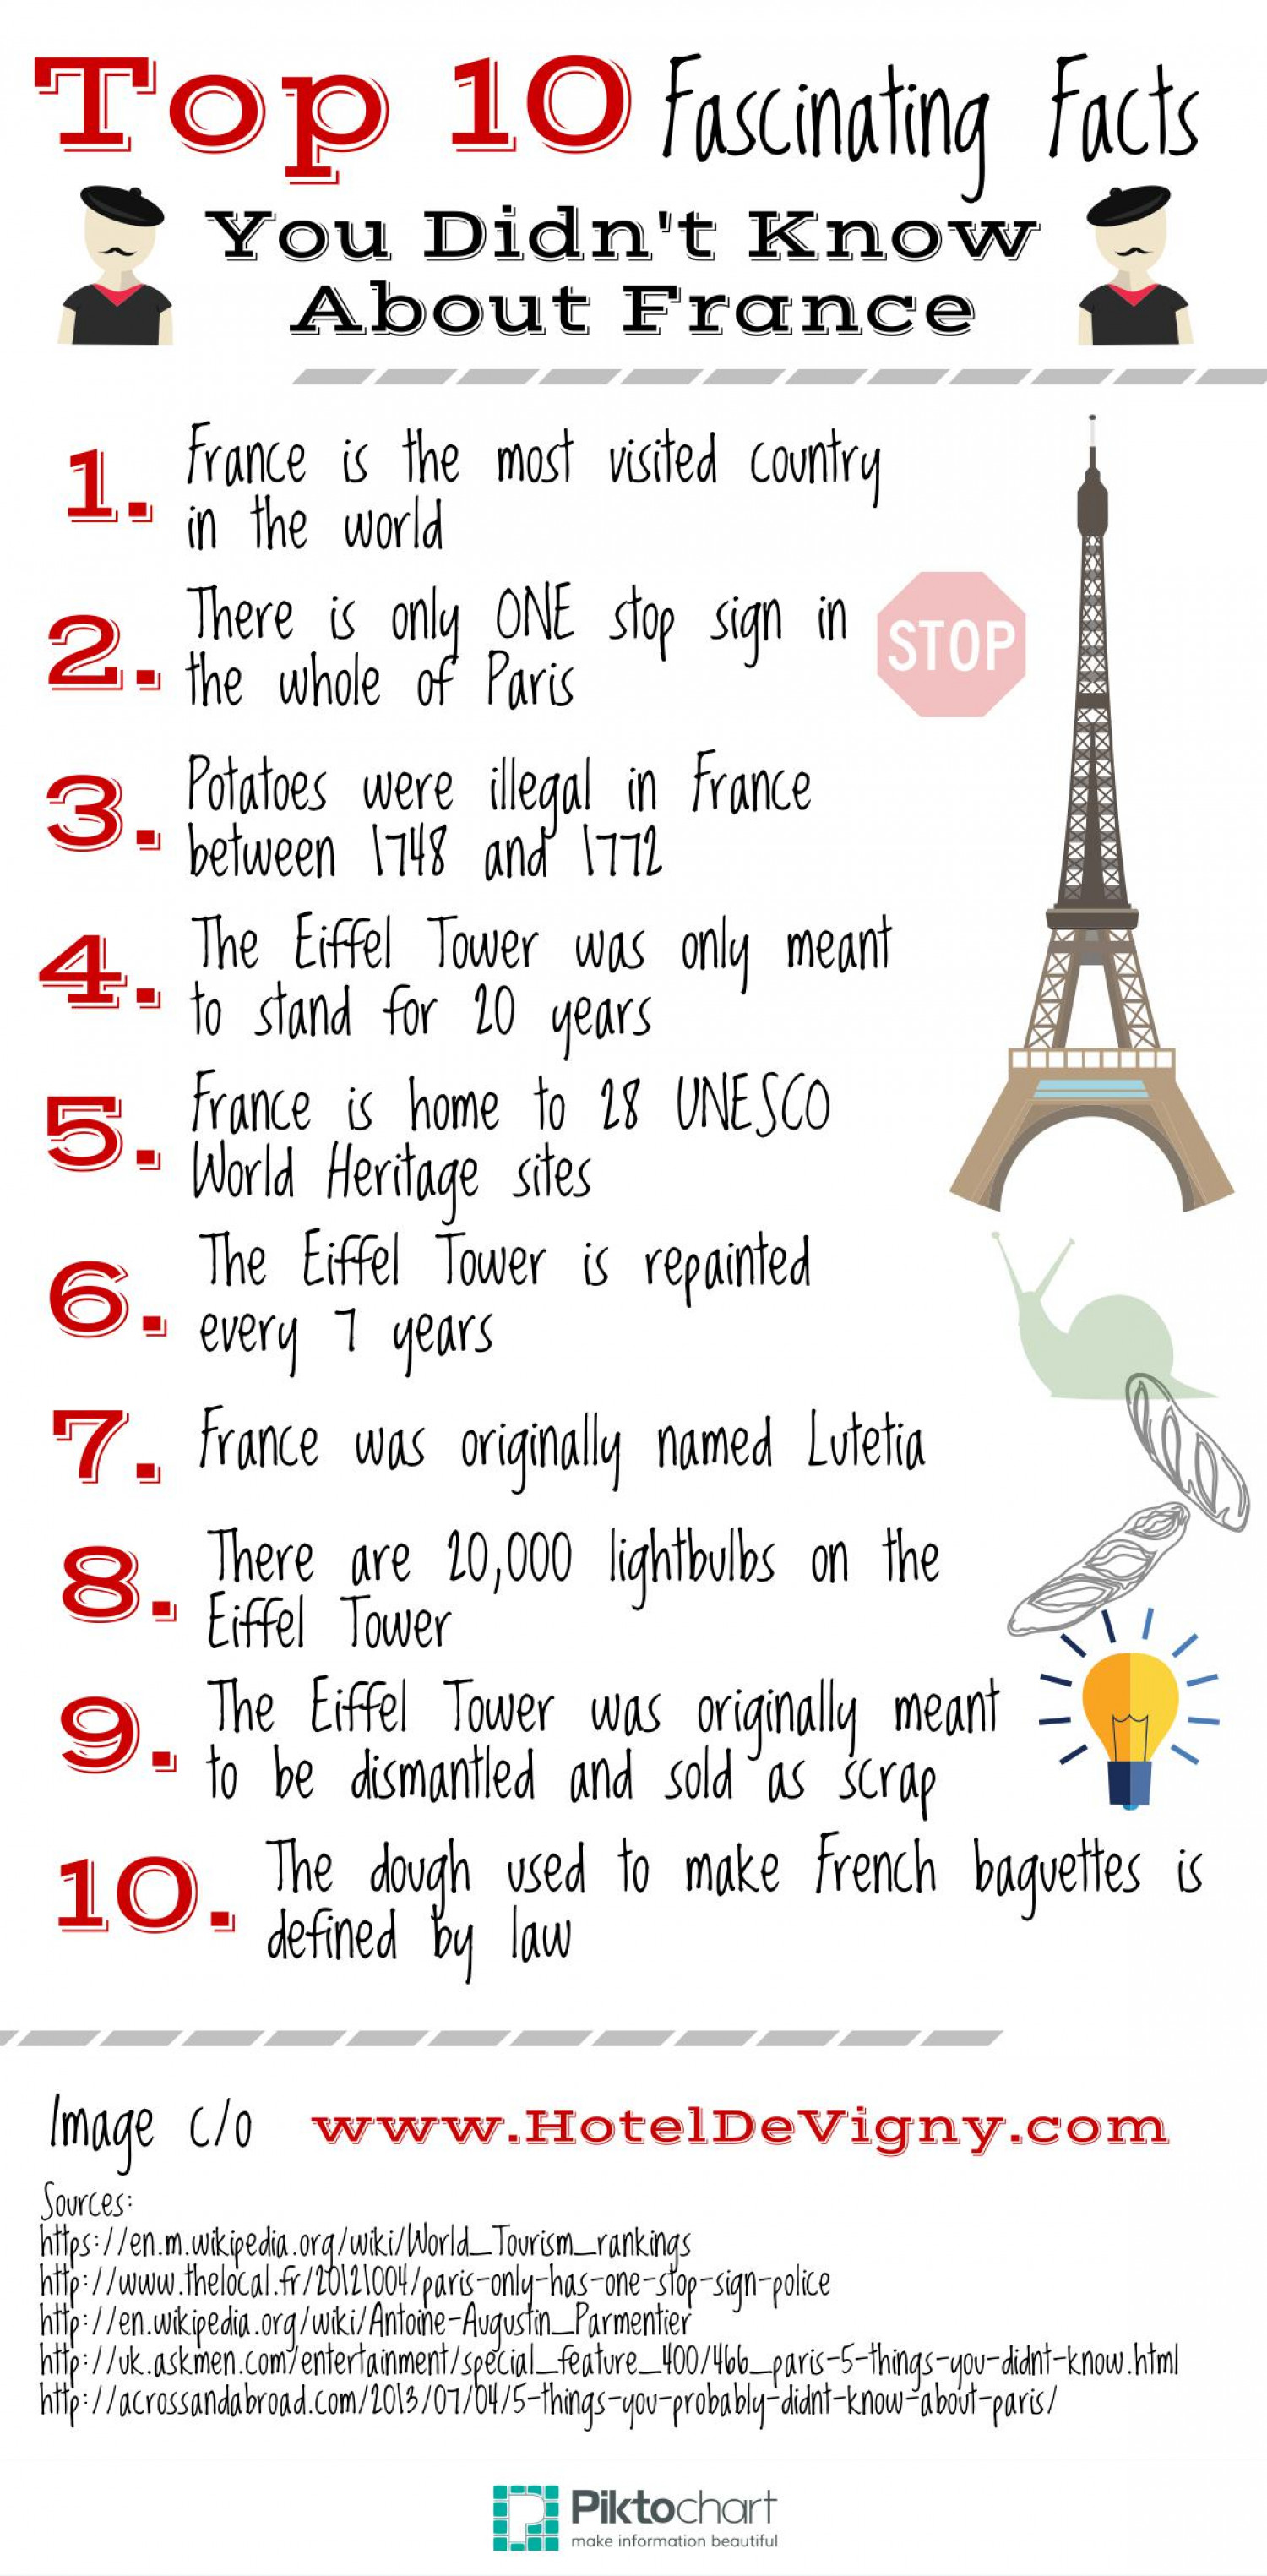 Top 10 Things To Do In Dubai Dubai Unabashedly Aims To Be: Top 10 Fascinating Facts You Didn't Know About France